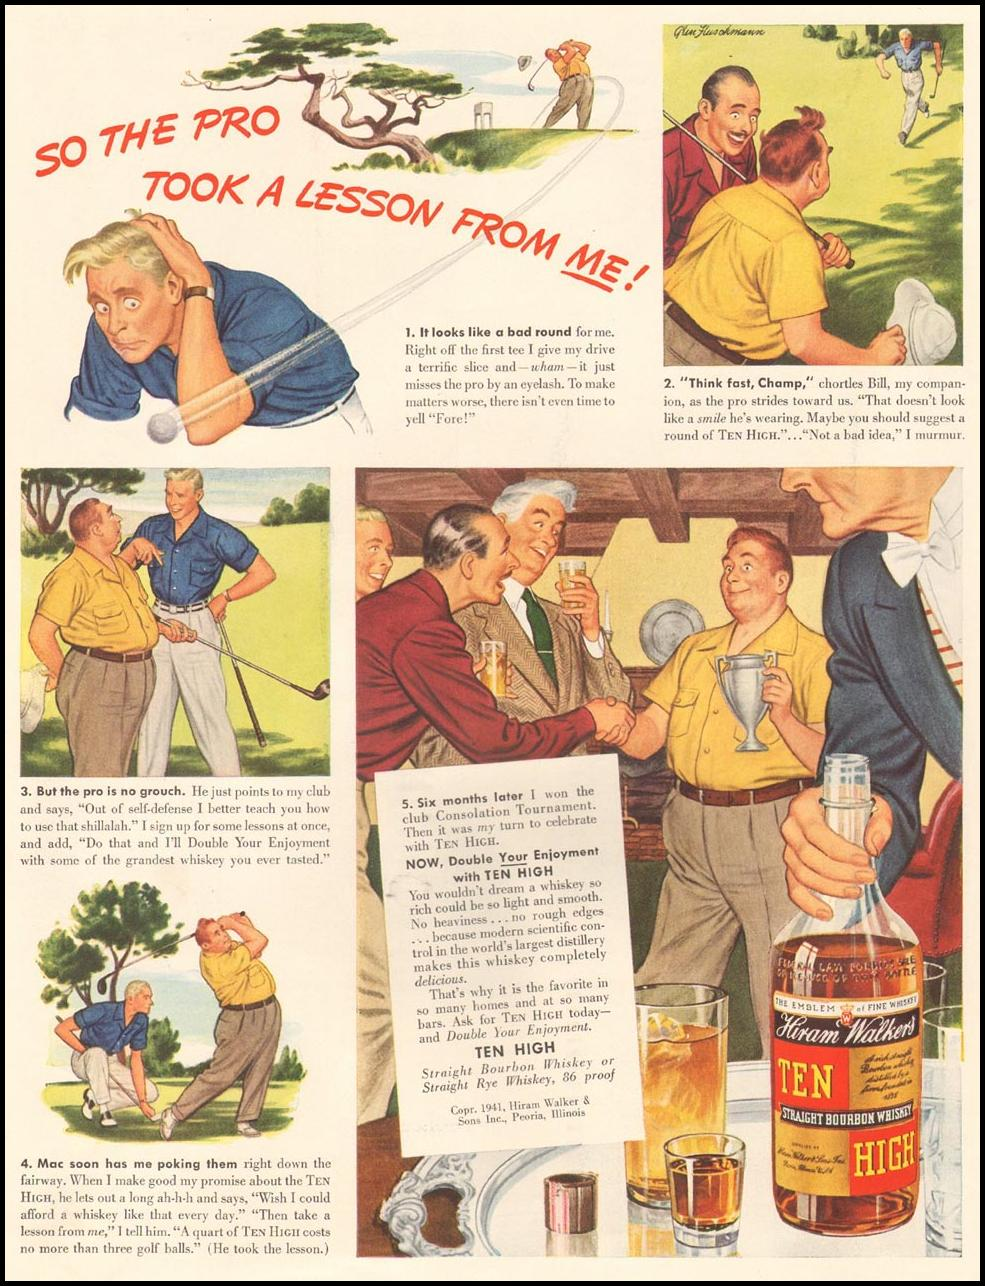 HIRAM WALKER'S TEN HIGH BOURBON WHISKEY LIFE 09/29/1941